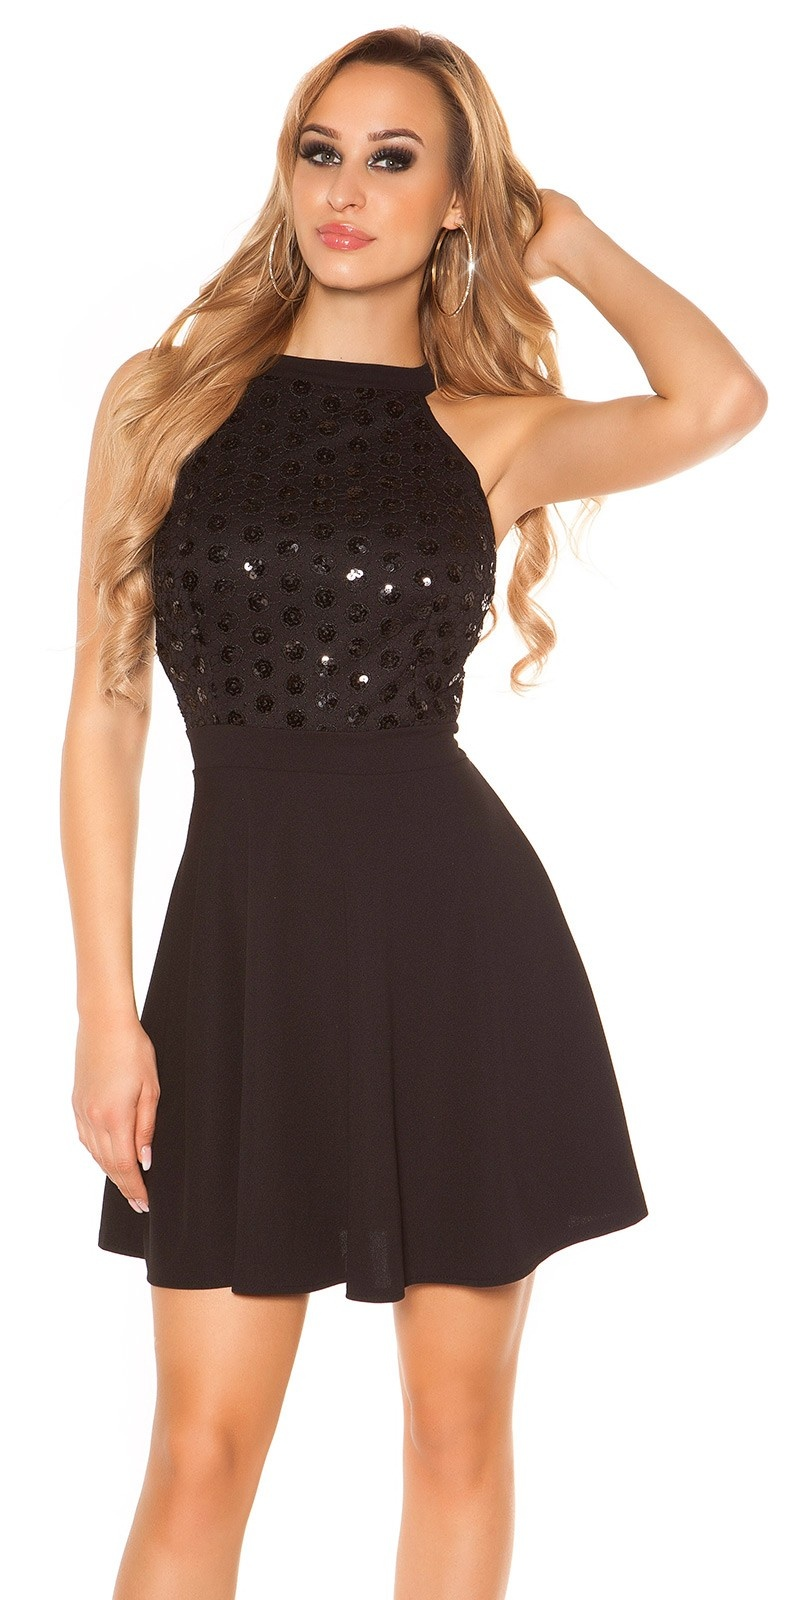 Sexy mini dress with sequins Black